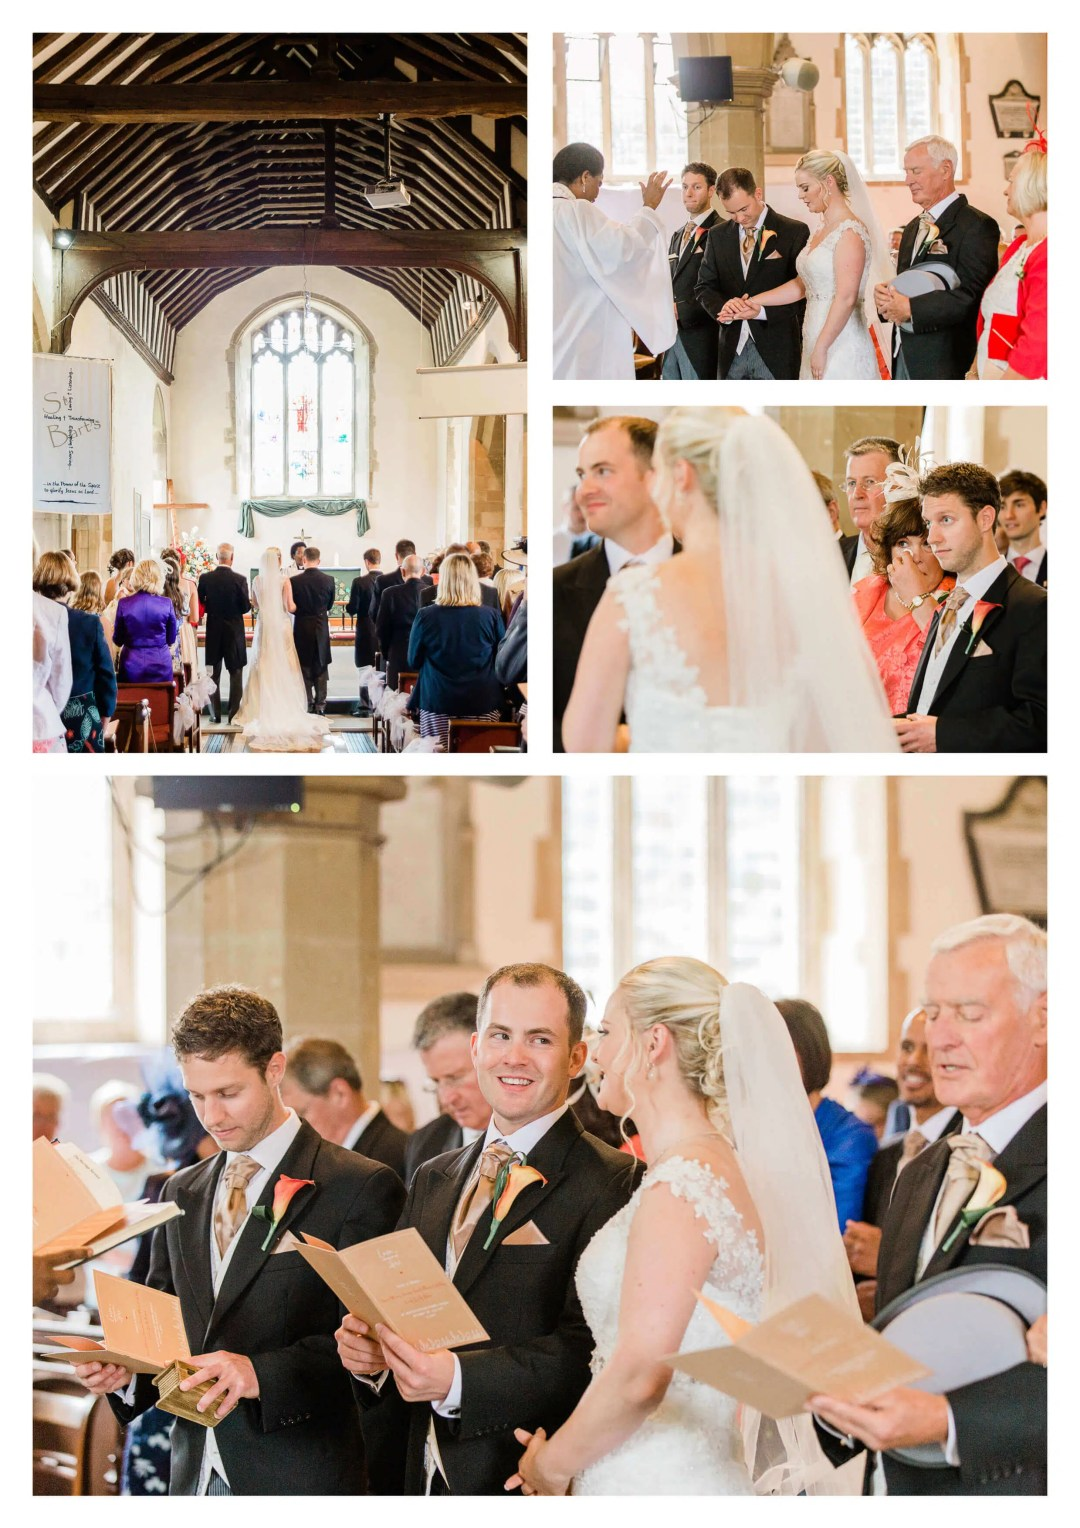 St Bartholomew's Church wedding ceremony in Horley | Surrey Photographer